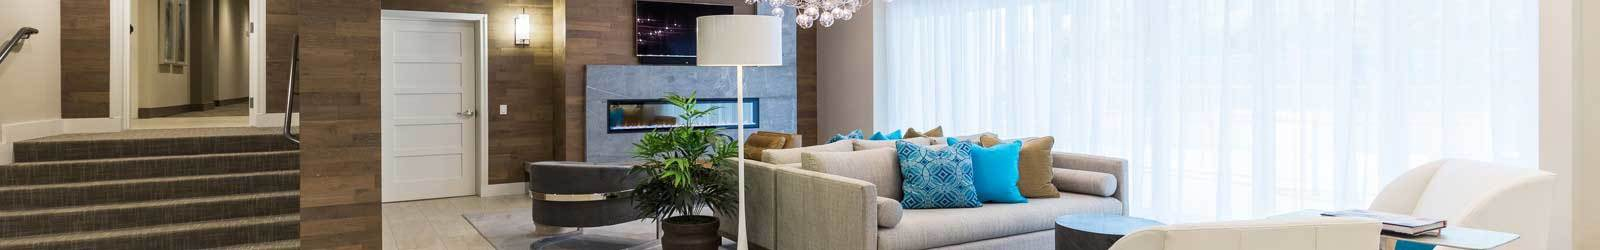 Contact CitySide Apartments for information about our apartments in Sarasota